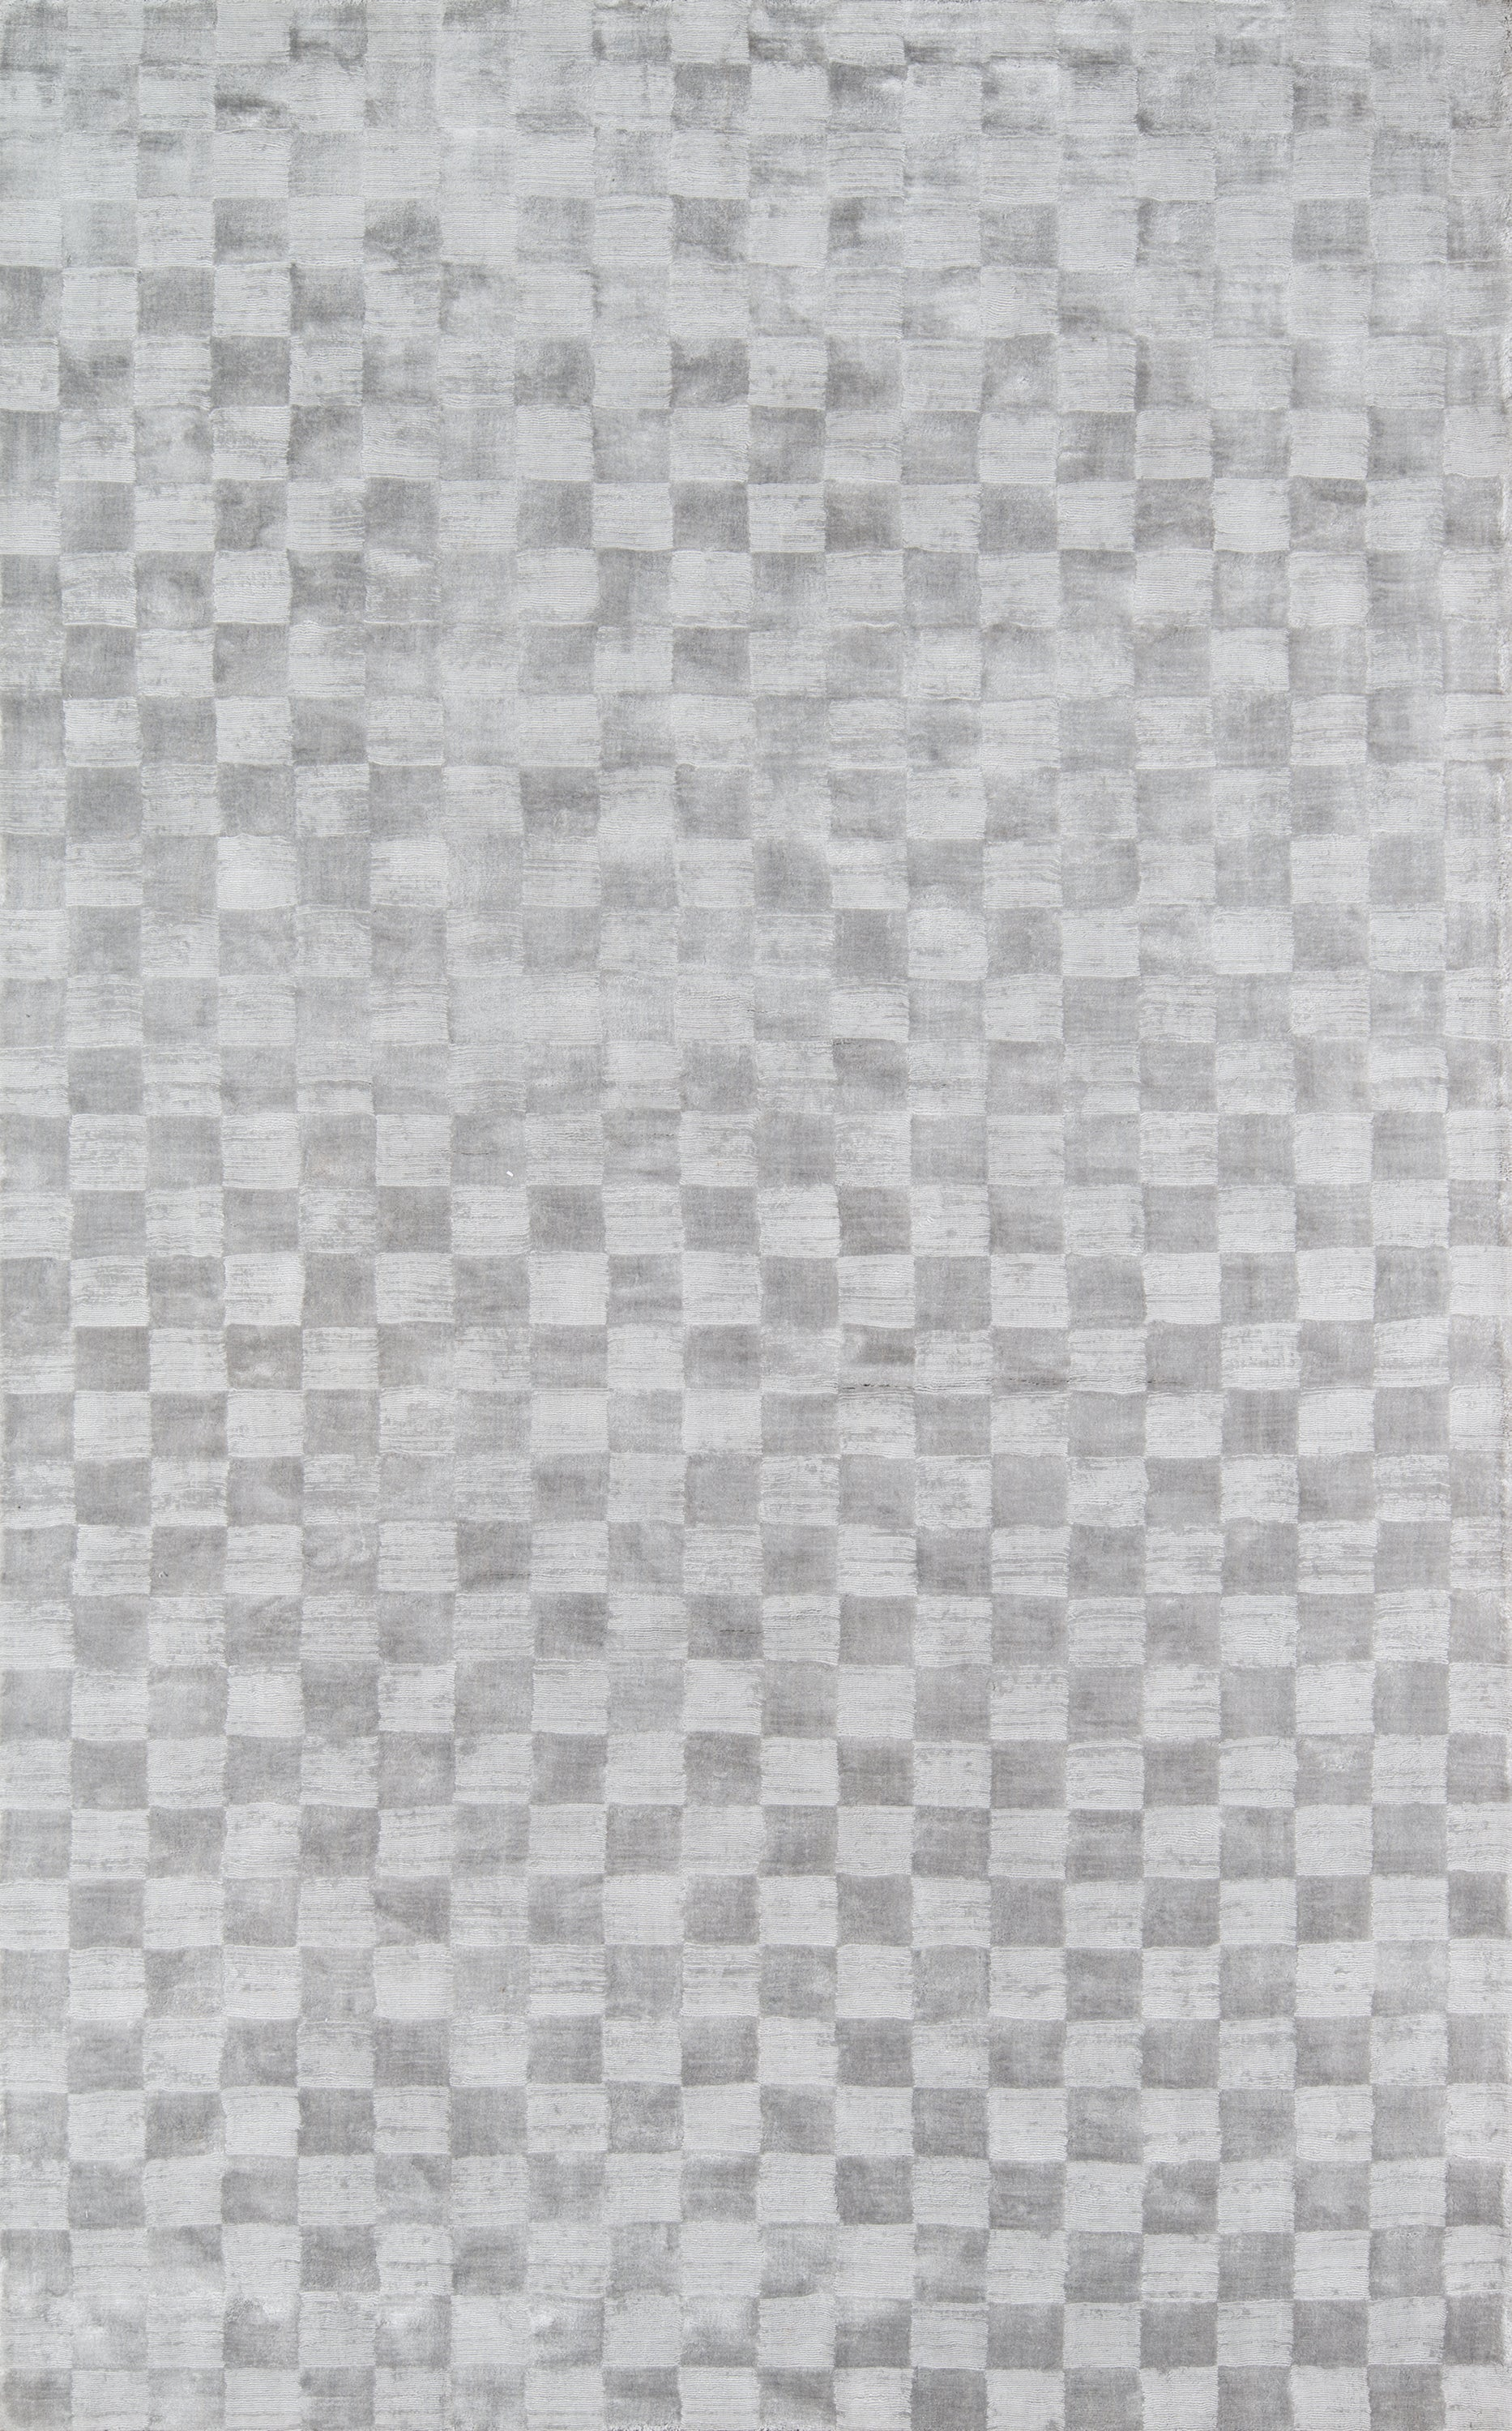 Rectangle 96x136 Gray Checkered Hand Tufted Jute & Natural Fibers Modern recommended for Bedroom, Living Room, Dining Room, Office